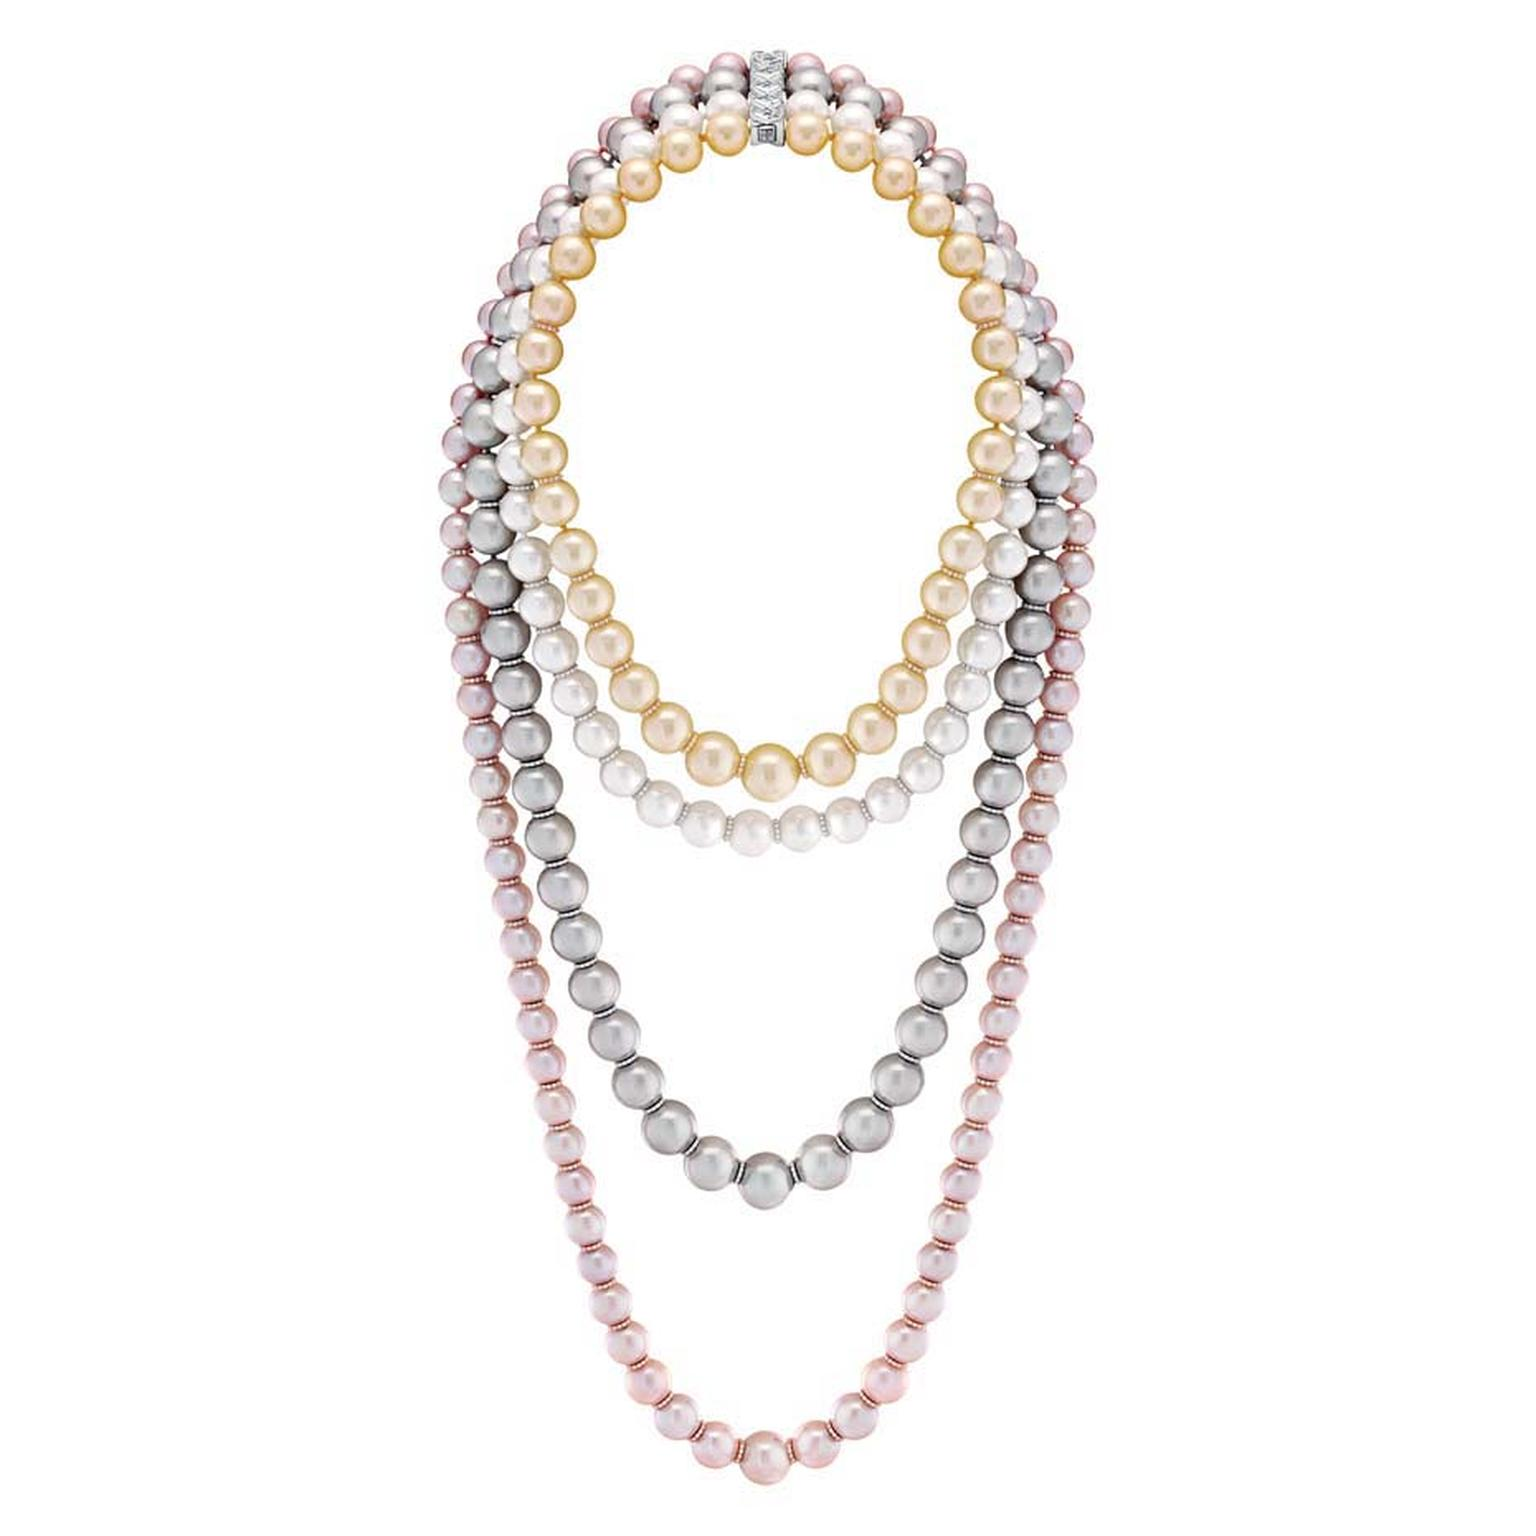 Chanel Perles Swing necklace from the Les Perles de Chanel collection launched in 2014, set with brilliant-cut diamonds, 72 South Sea cultured pearls, 49 Tahitian cultured pearls and 75 freshwater cultured pearls.